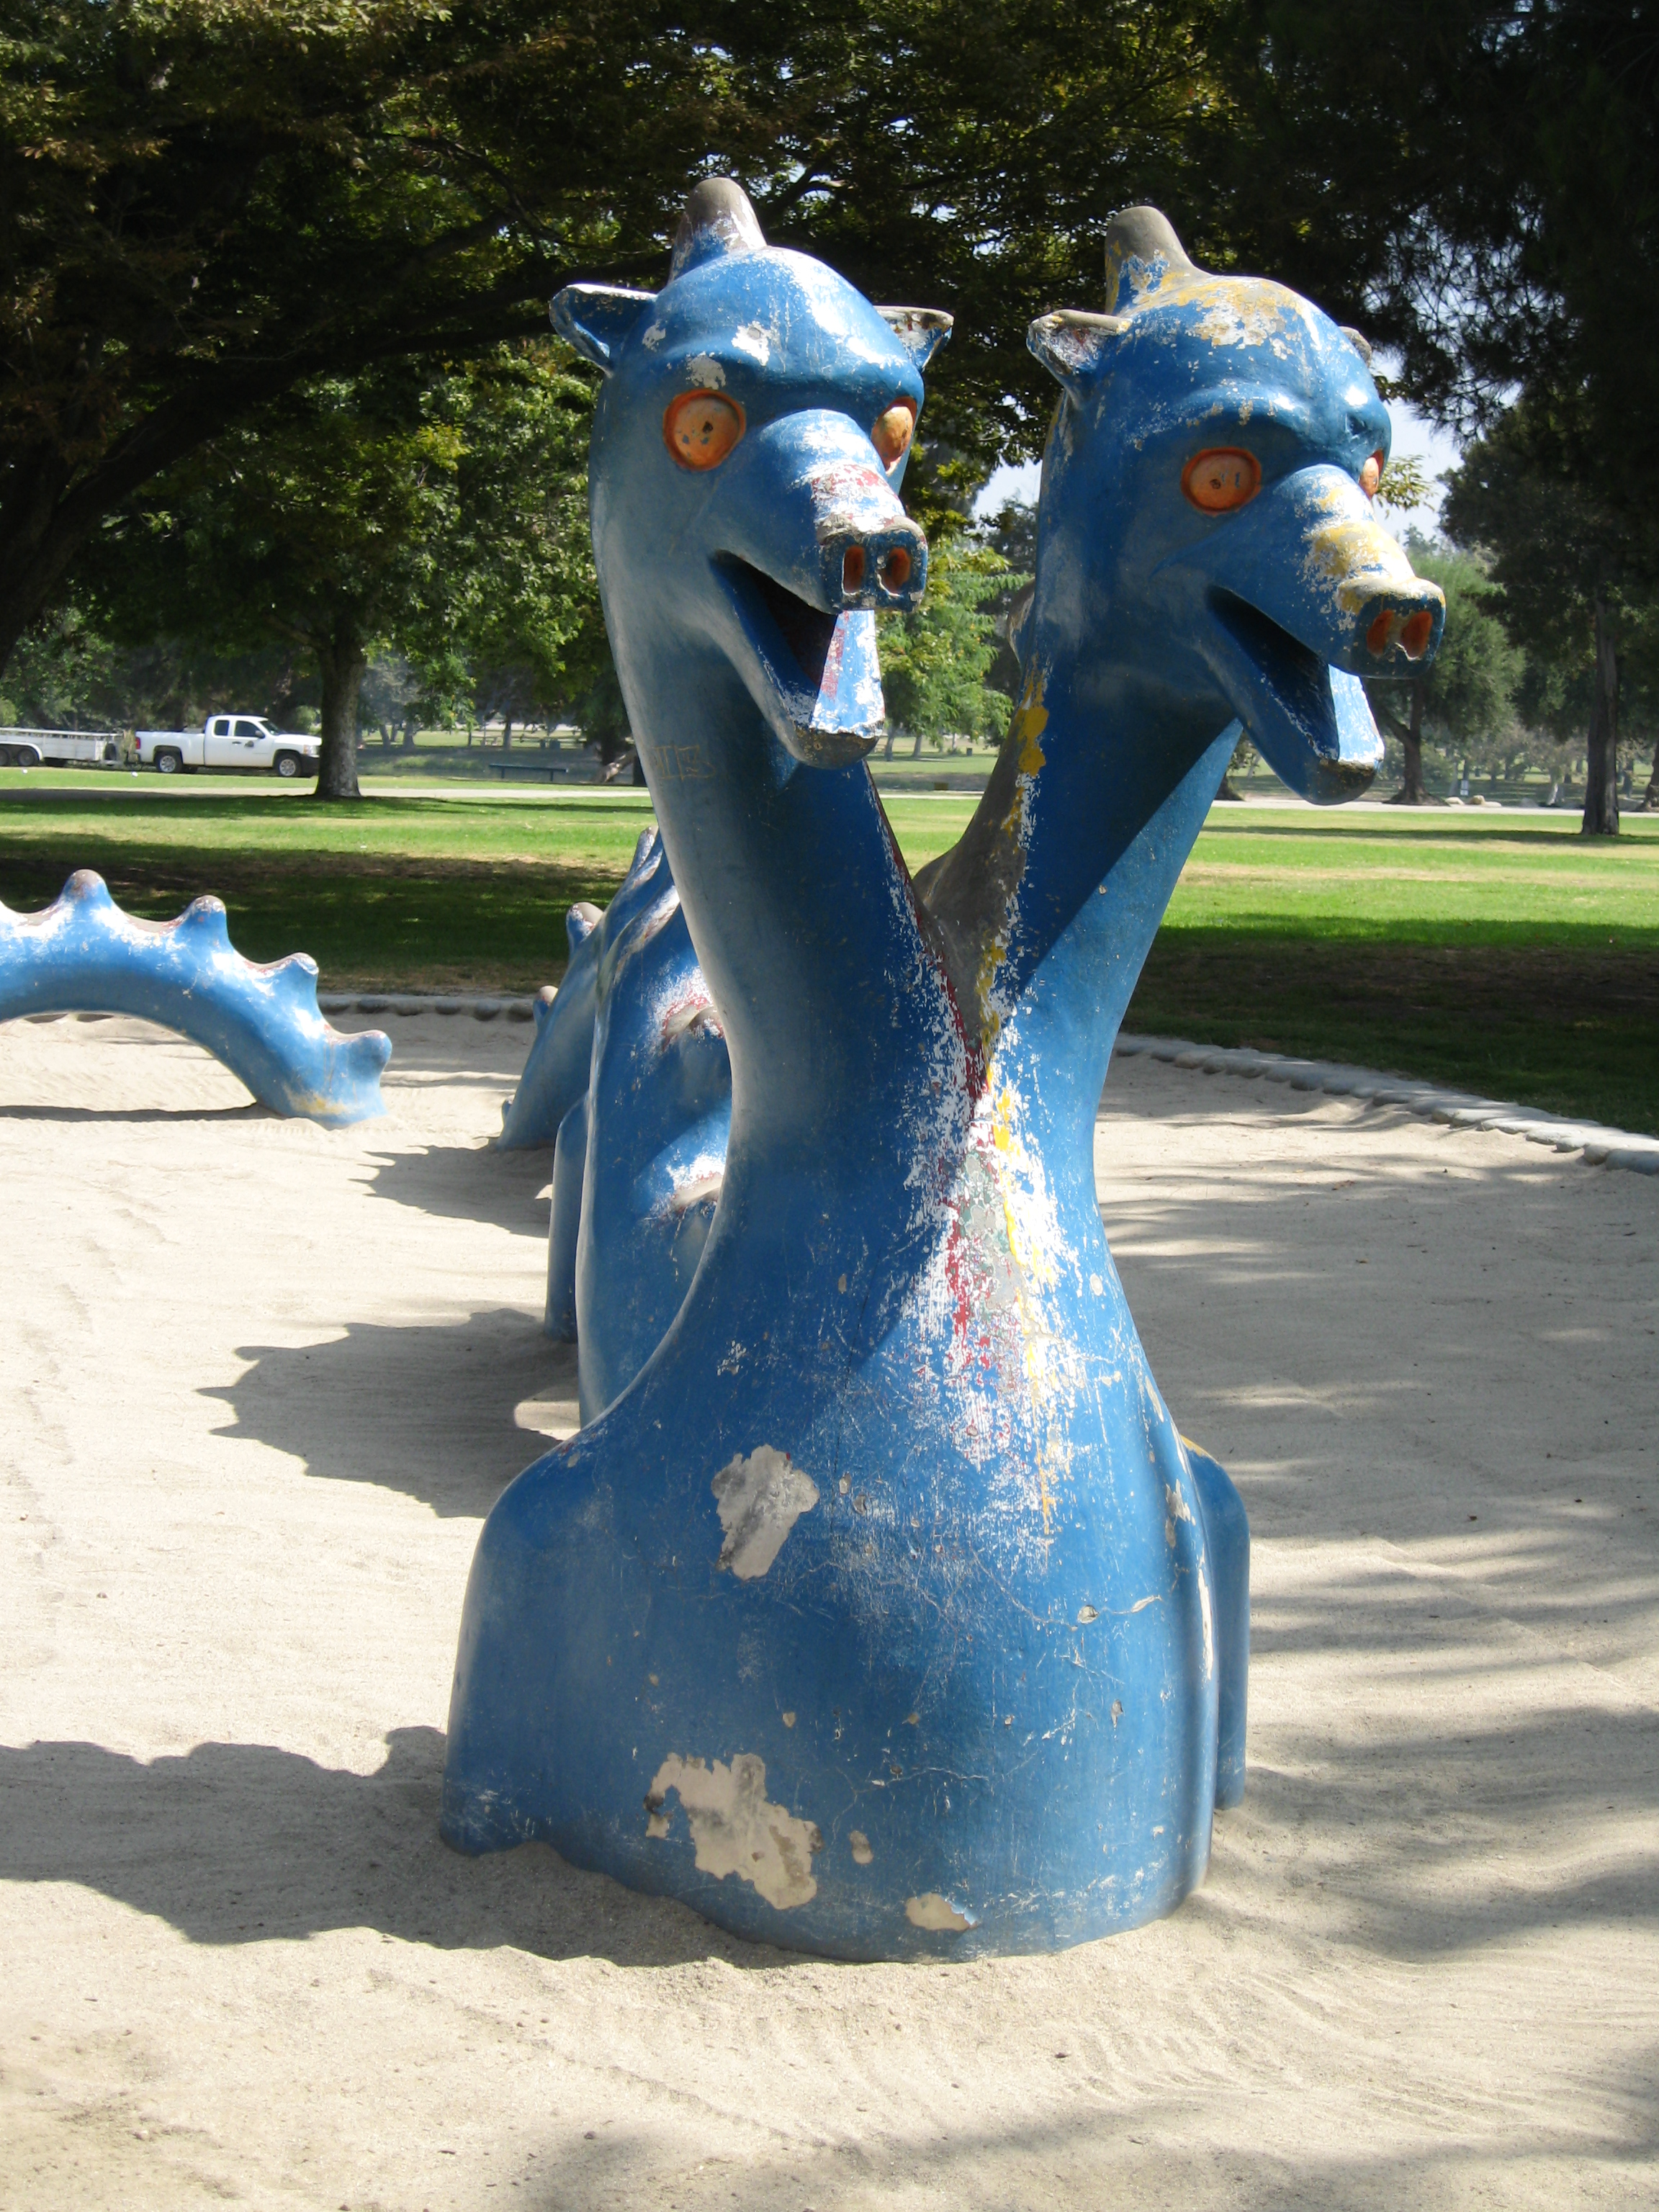 PHOTO: Legg Lake Play Sculptures